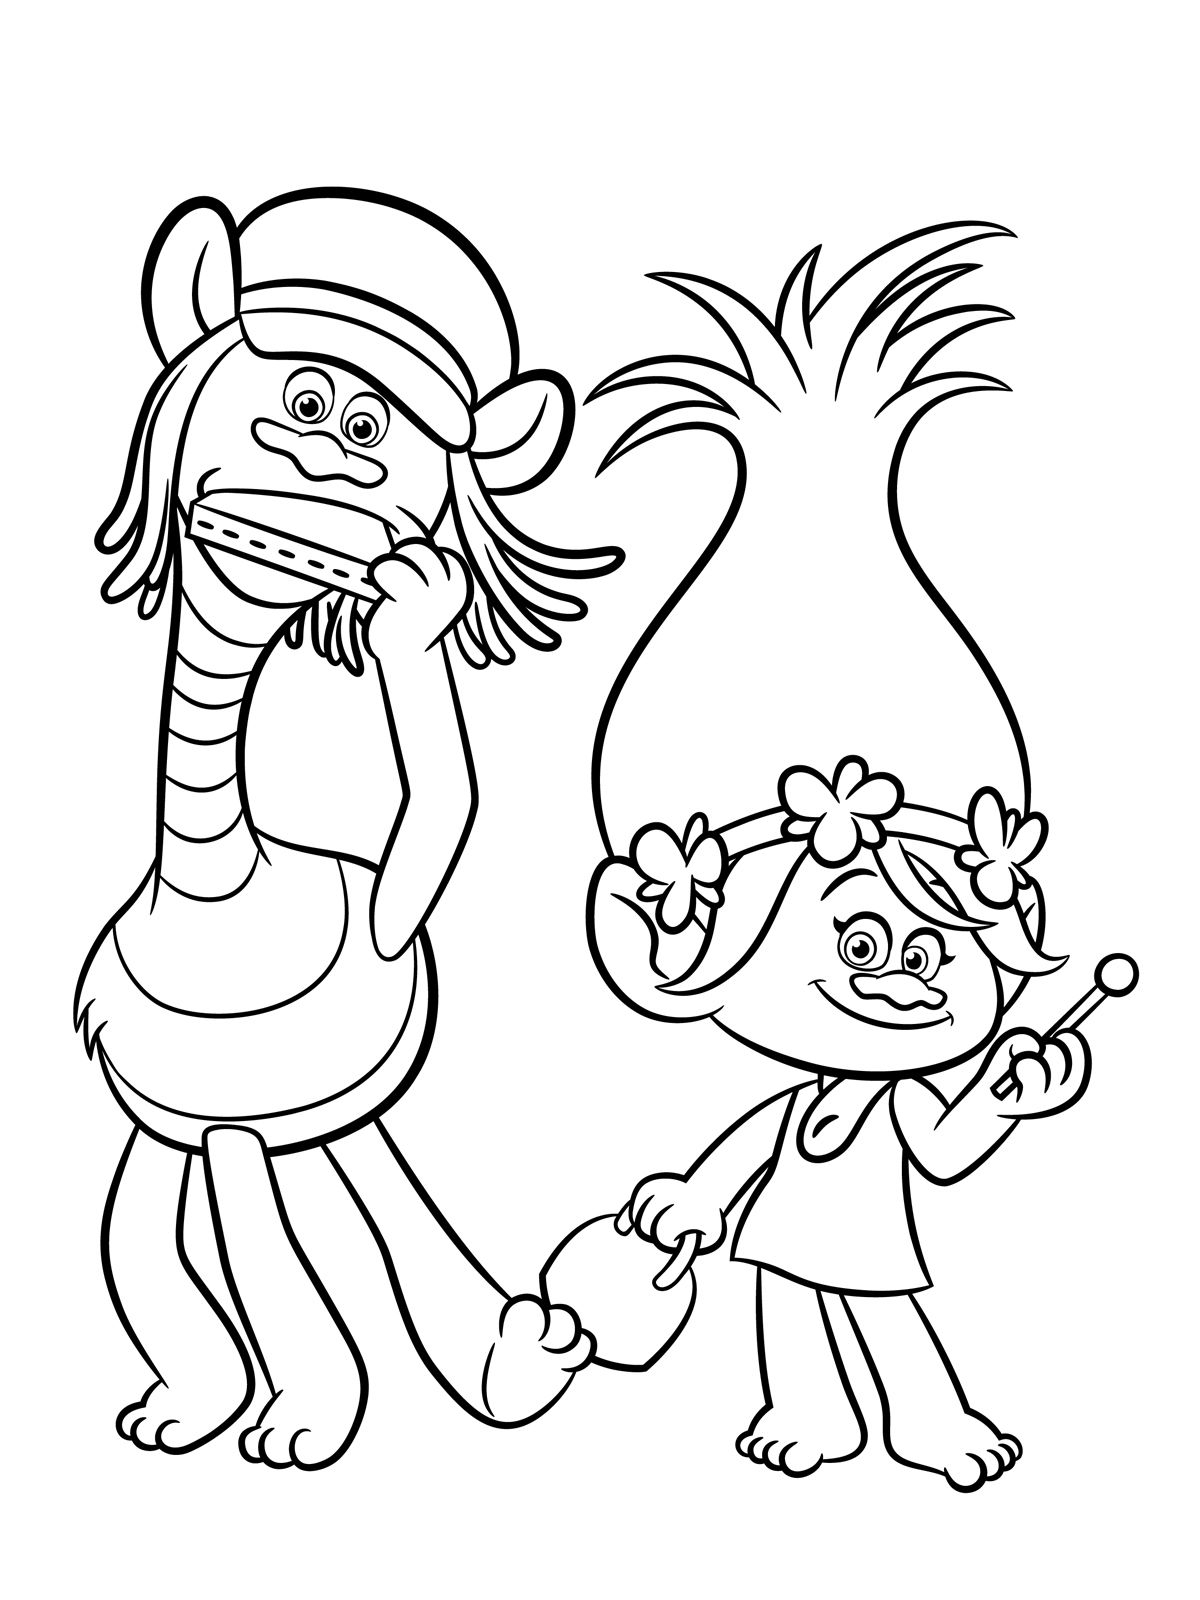 Coloring Disney Pages Disney Coloring Pages Best Coloring Pages For Kids